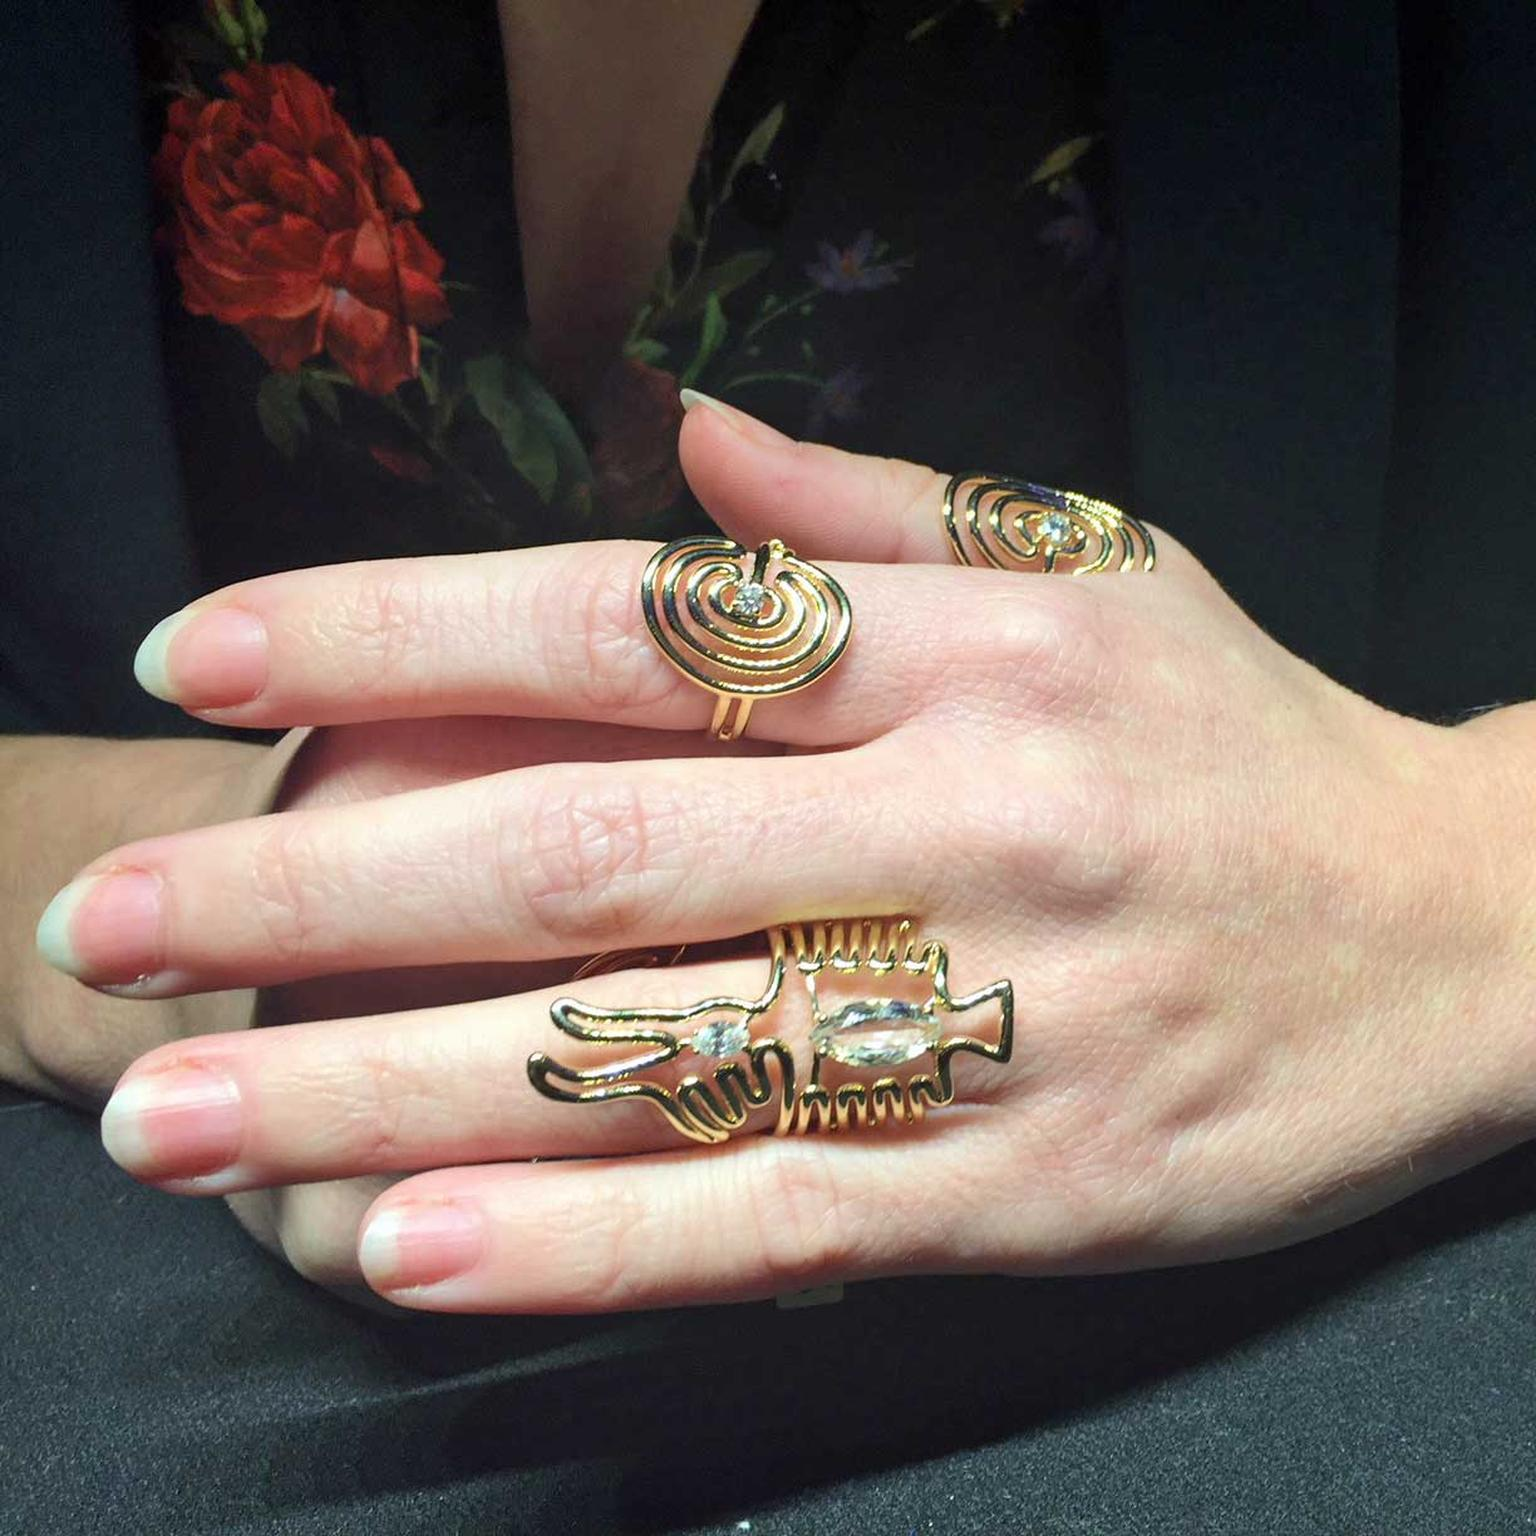 Rings from Lydia Courteille's Nazca collection